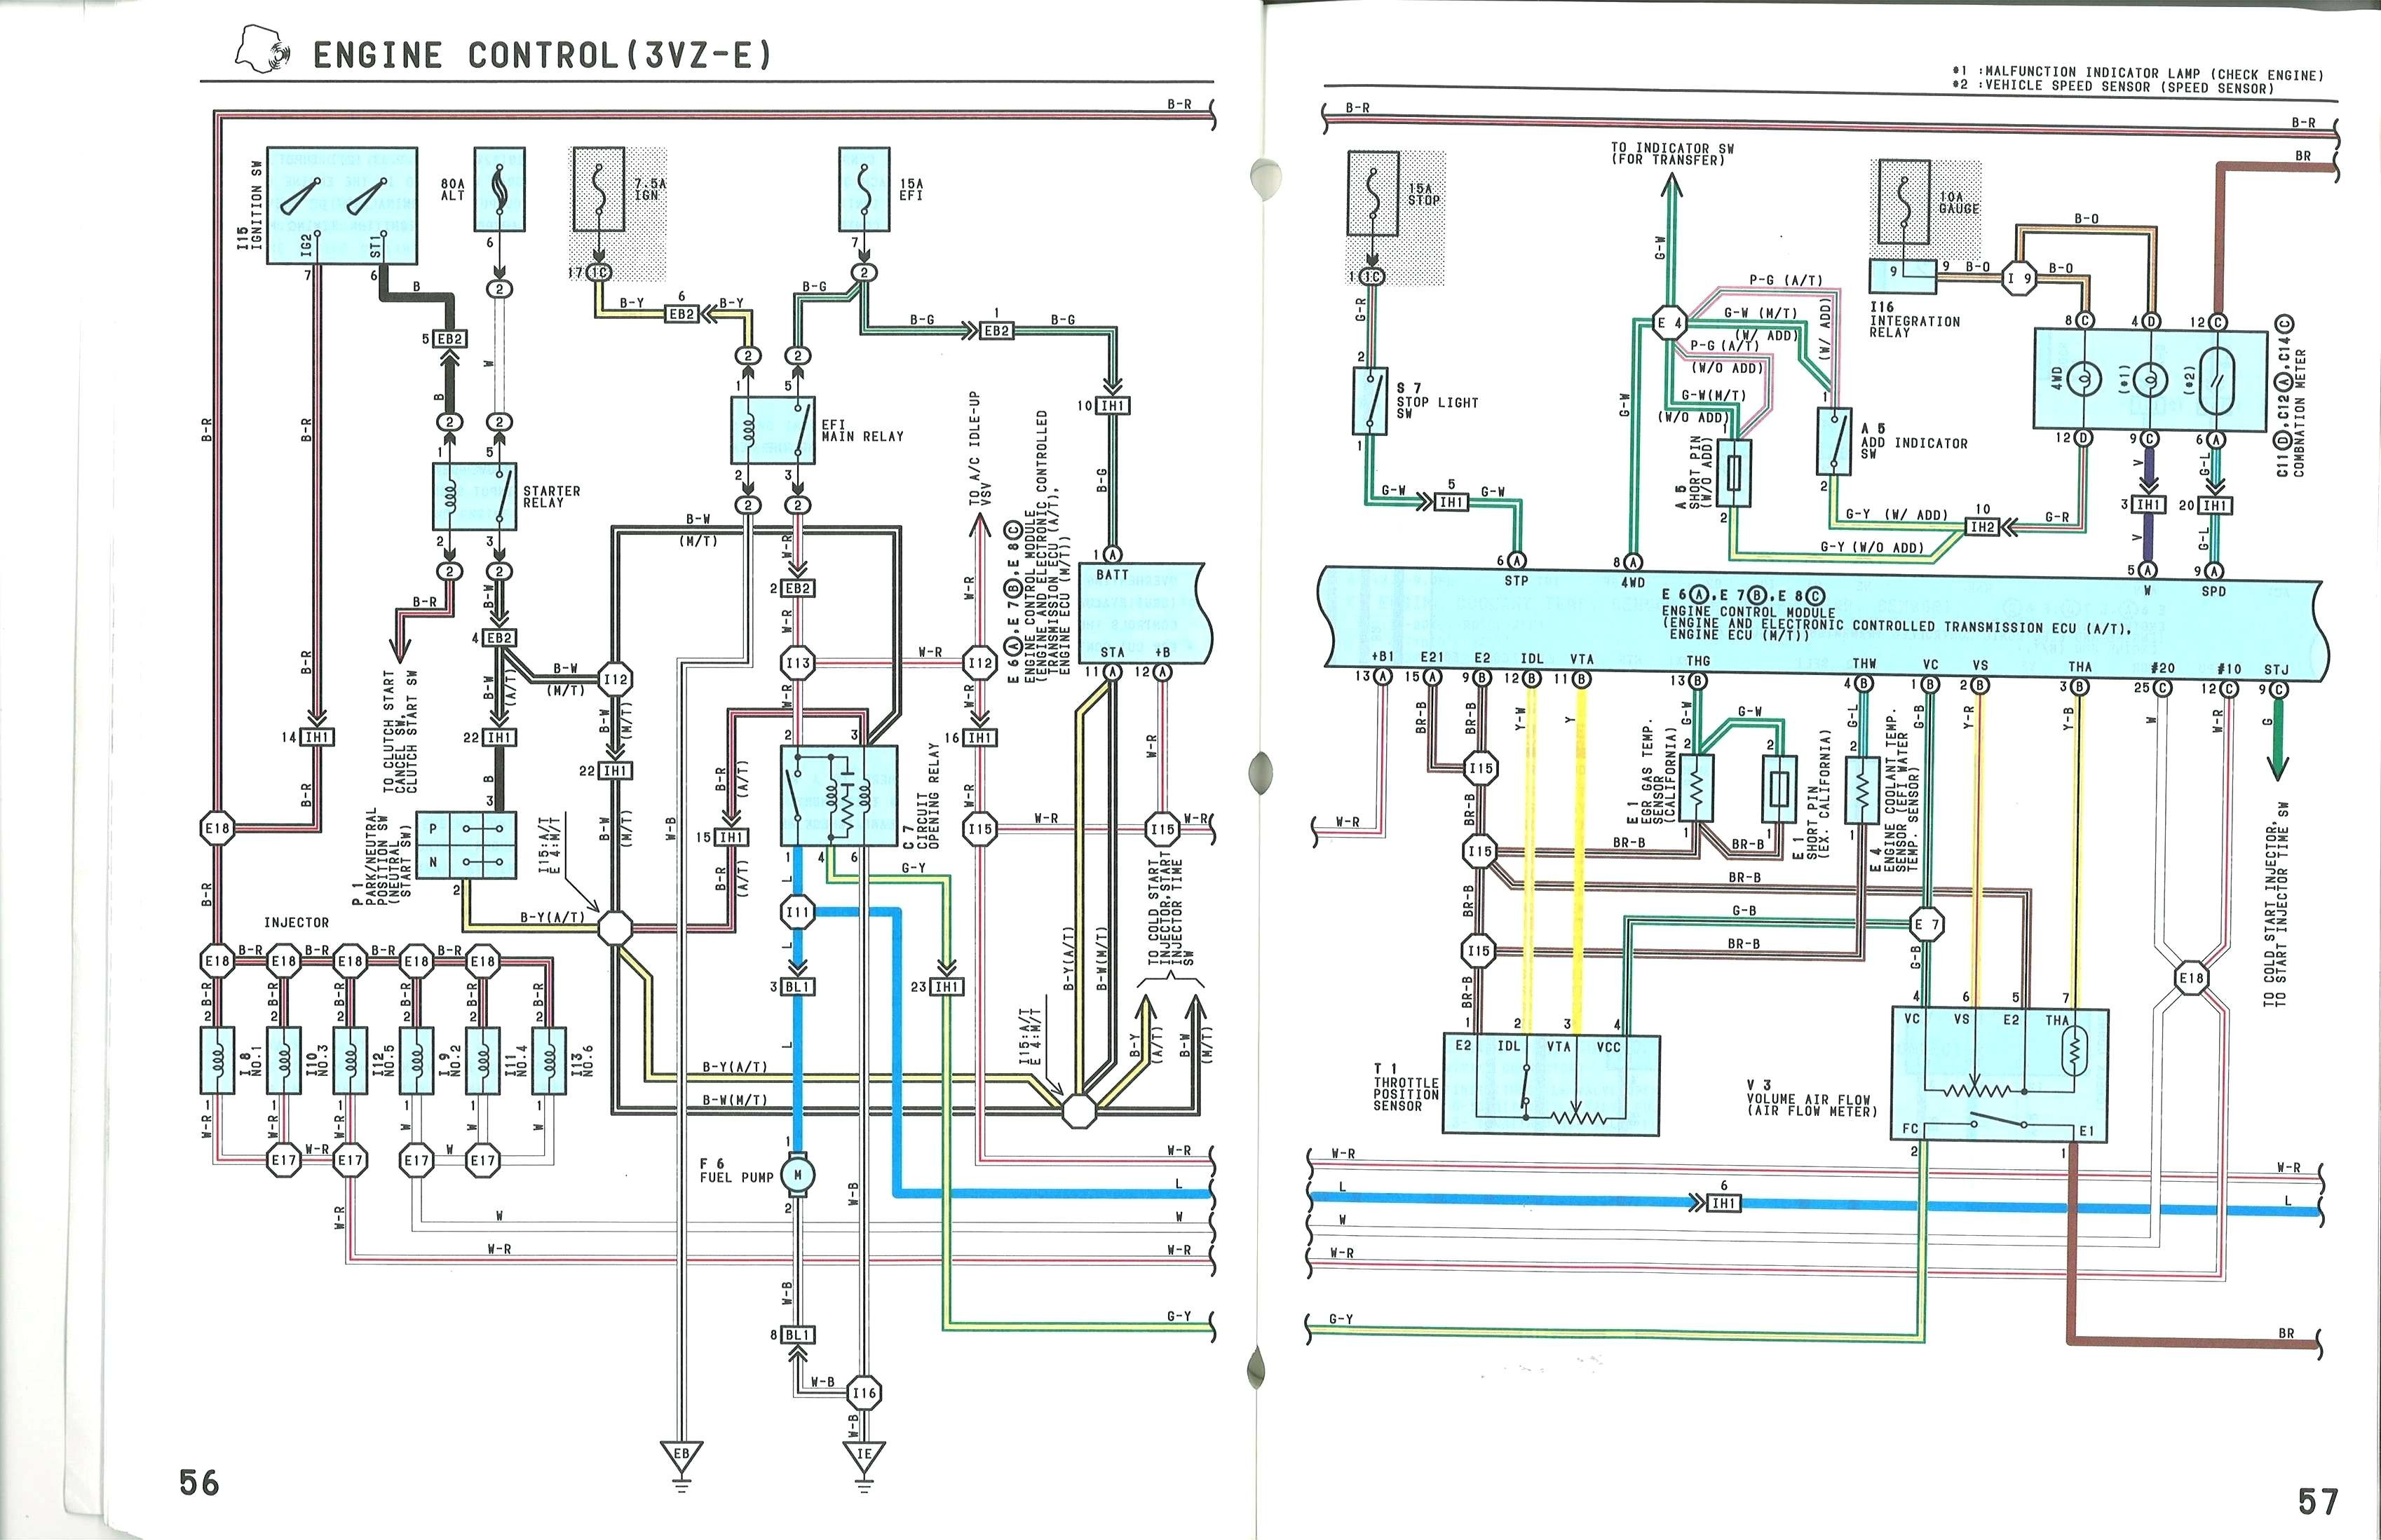 Toyota 22re O2 Sensor Wiring | Wiring Diagram